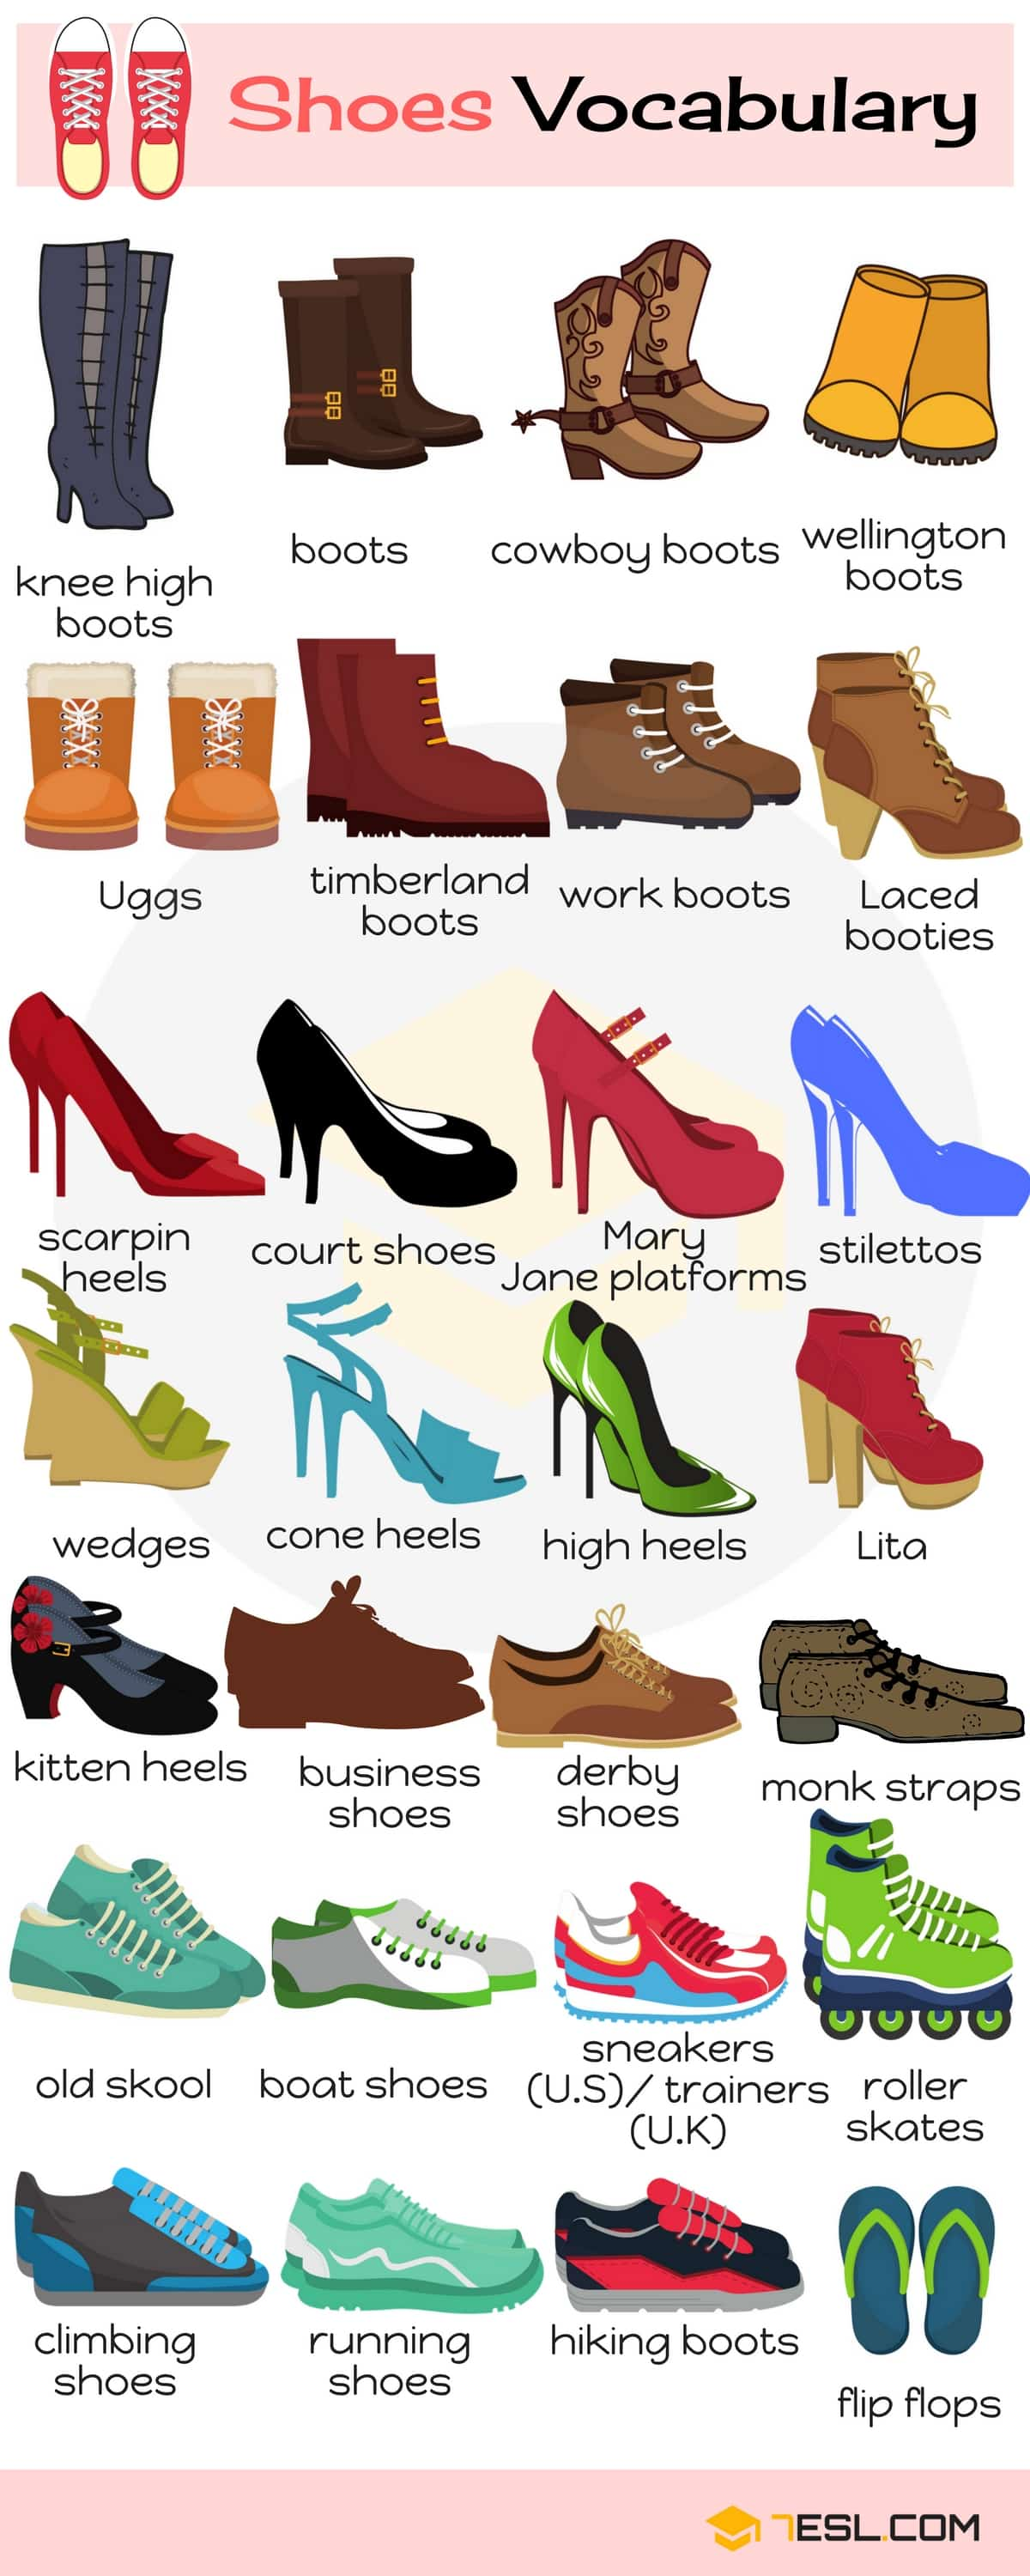 Shoes Vocabulary | Image